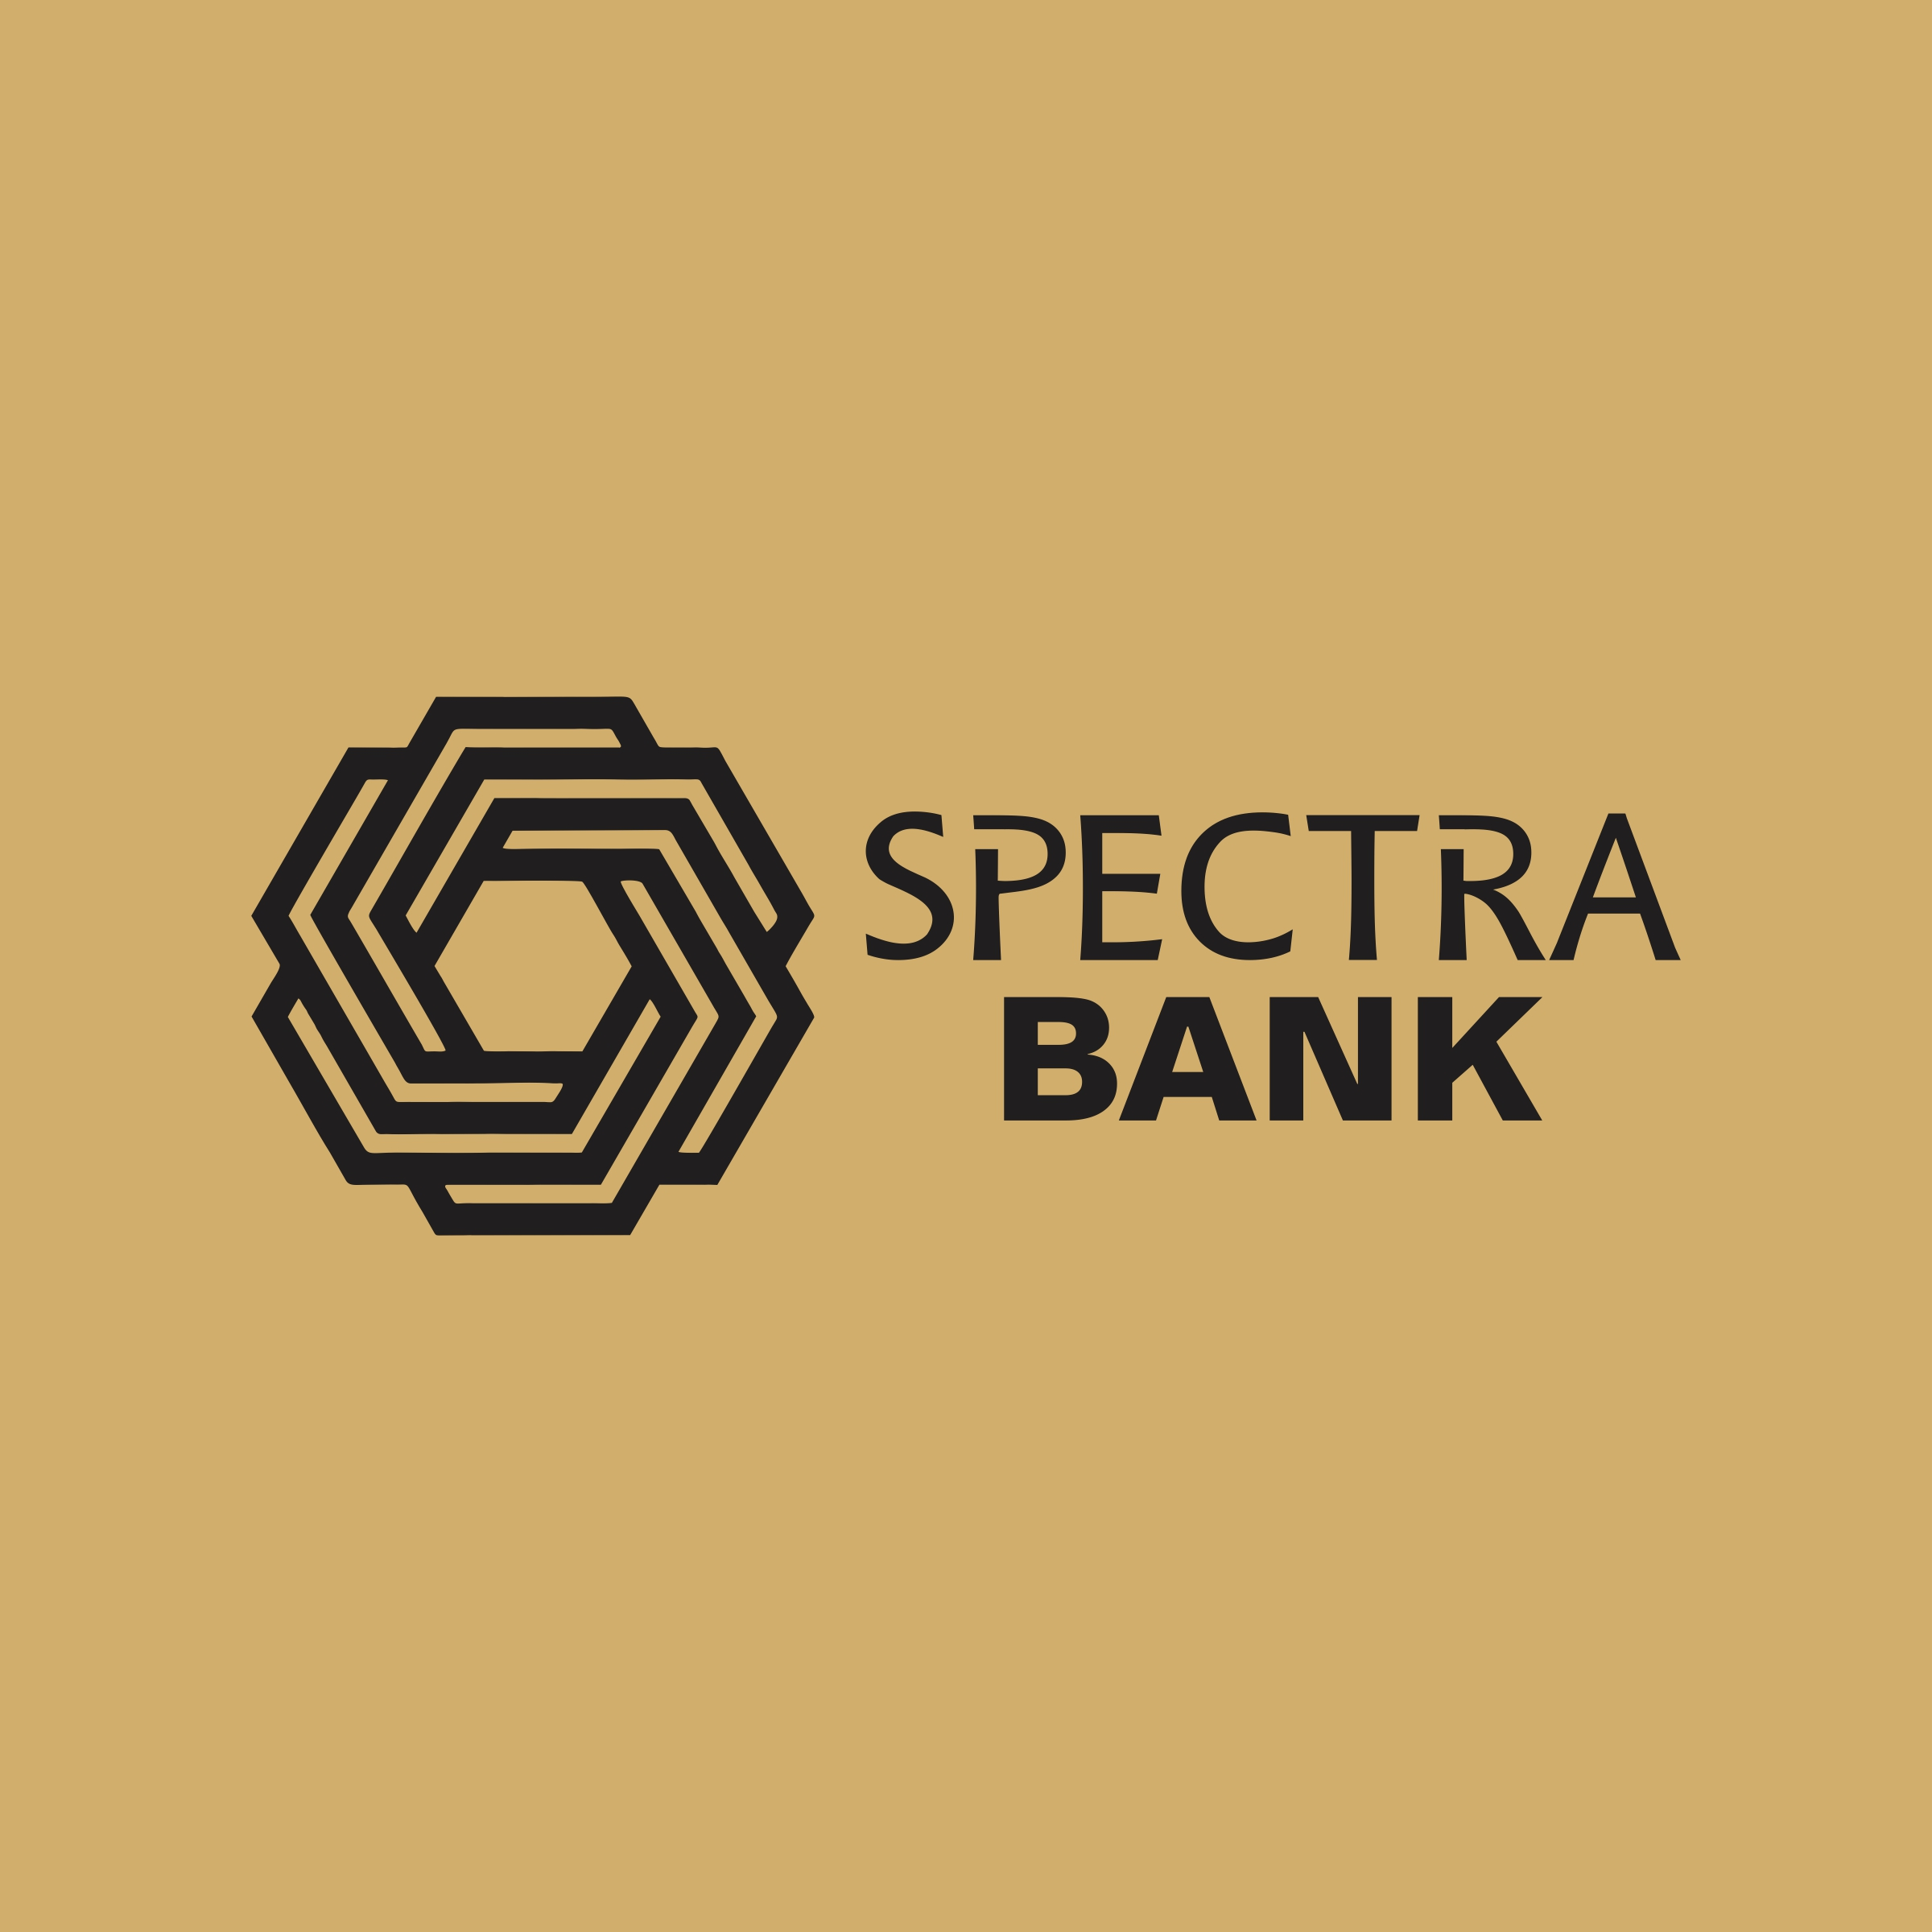 Spectra Bank image 0